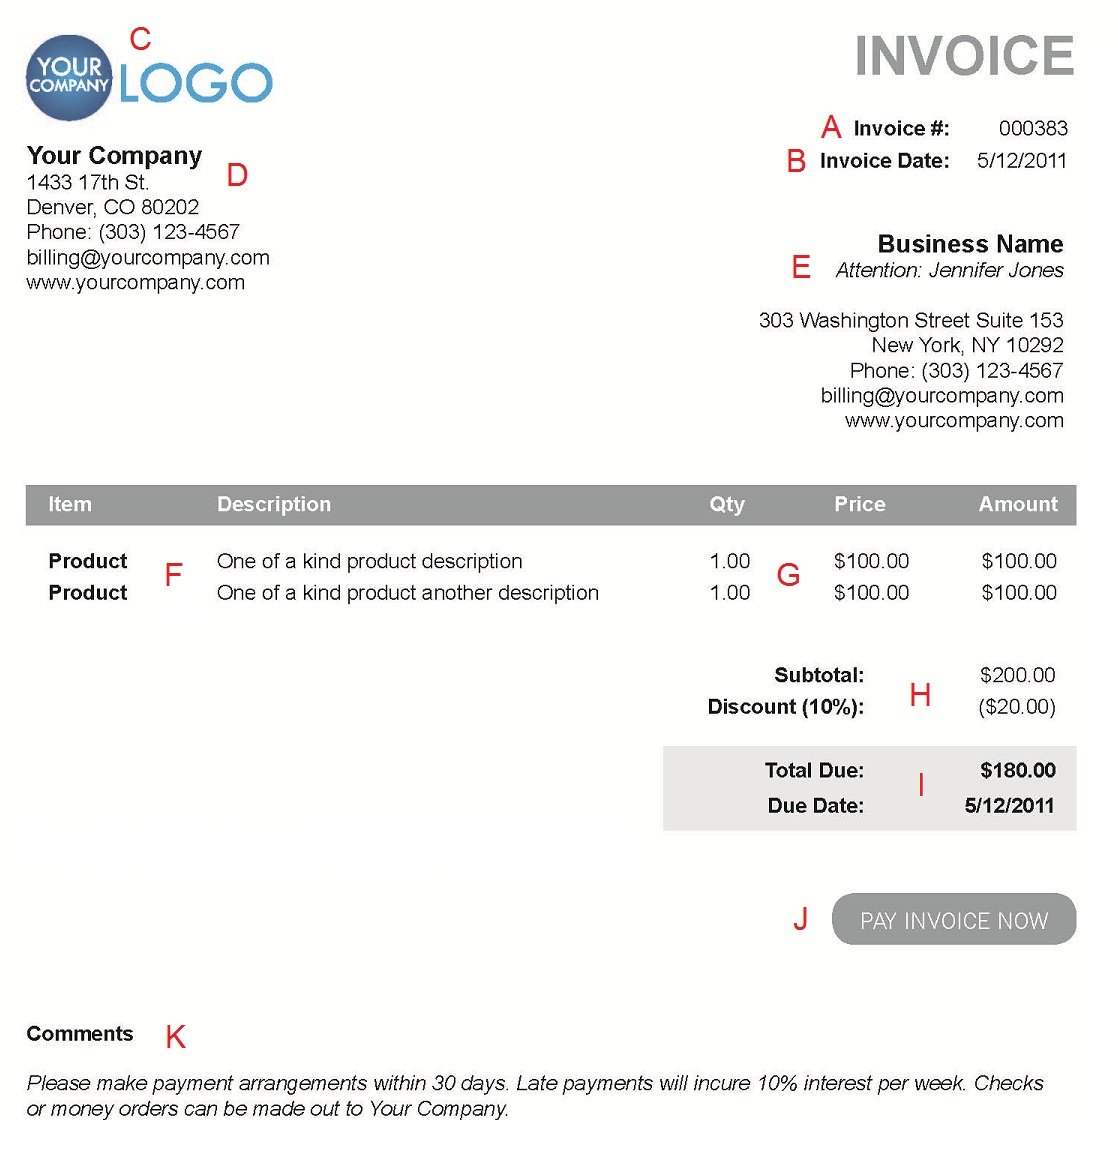 Pigbrotherus  Unusual The  Different Sections Of An Electronic Payment Invoice With Lovely A  With Cool Vat Invoice Template Also Invoicing Clerk In Addition Invoice Number Example And Invoice Vs Sticker Price As Well As Invoice Template Word Download Additionally How To Send Invoices From Paysimplecom With Pigbrotherus  Lovely The  Different Sections Of An Electronic Payment Invoice With Cool A  And Unusual Vat Invoice Template Also Invoicing Clerk In Addition Invoice Number Example From Paysimplecom